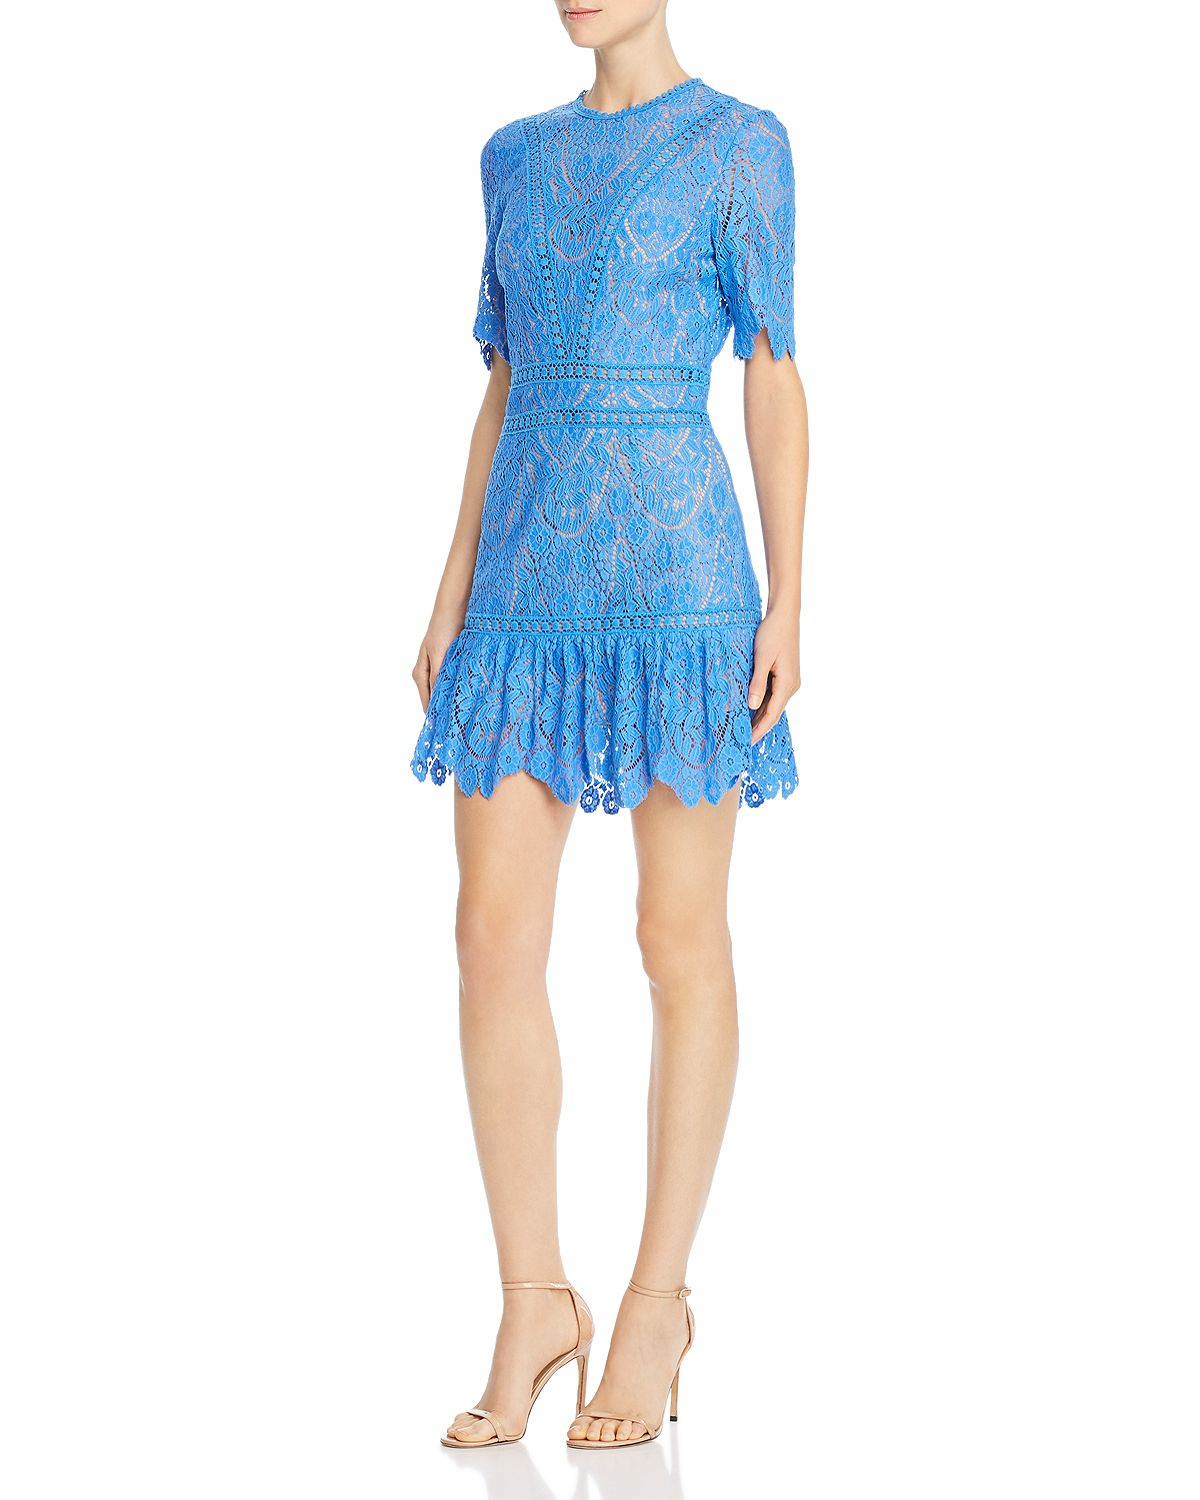 sky blue floral lace mini dress with crewneck and mid length sleeves